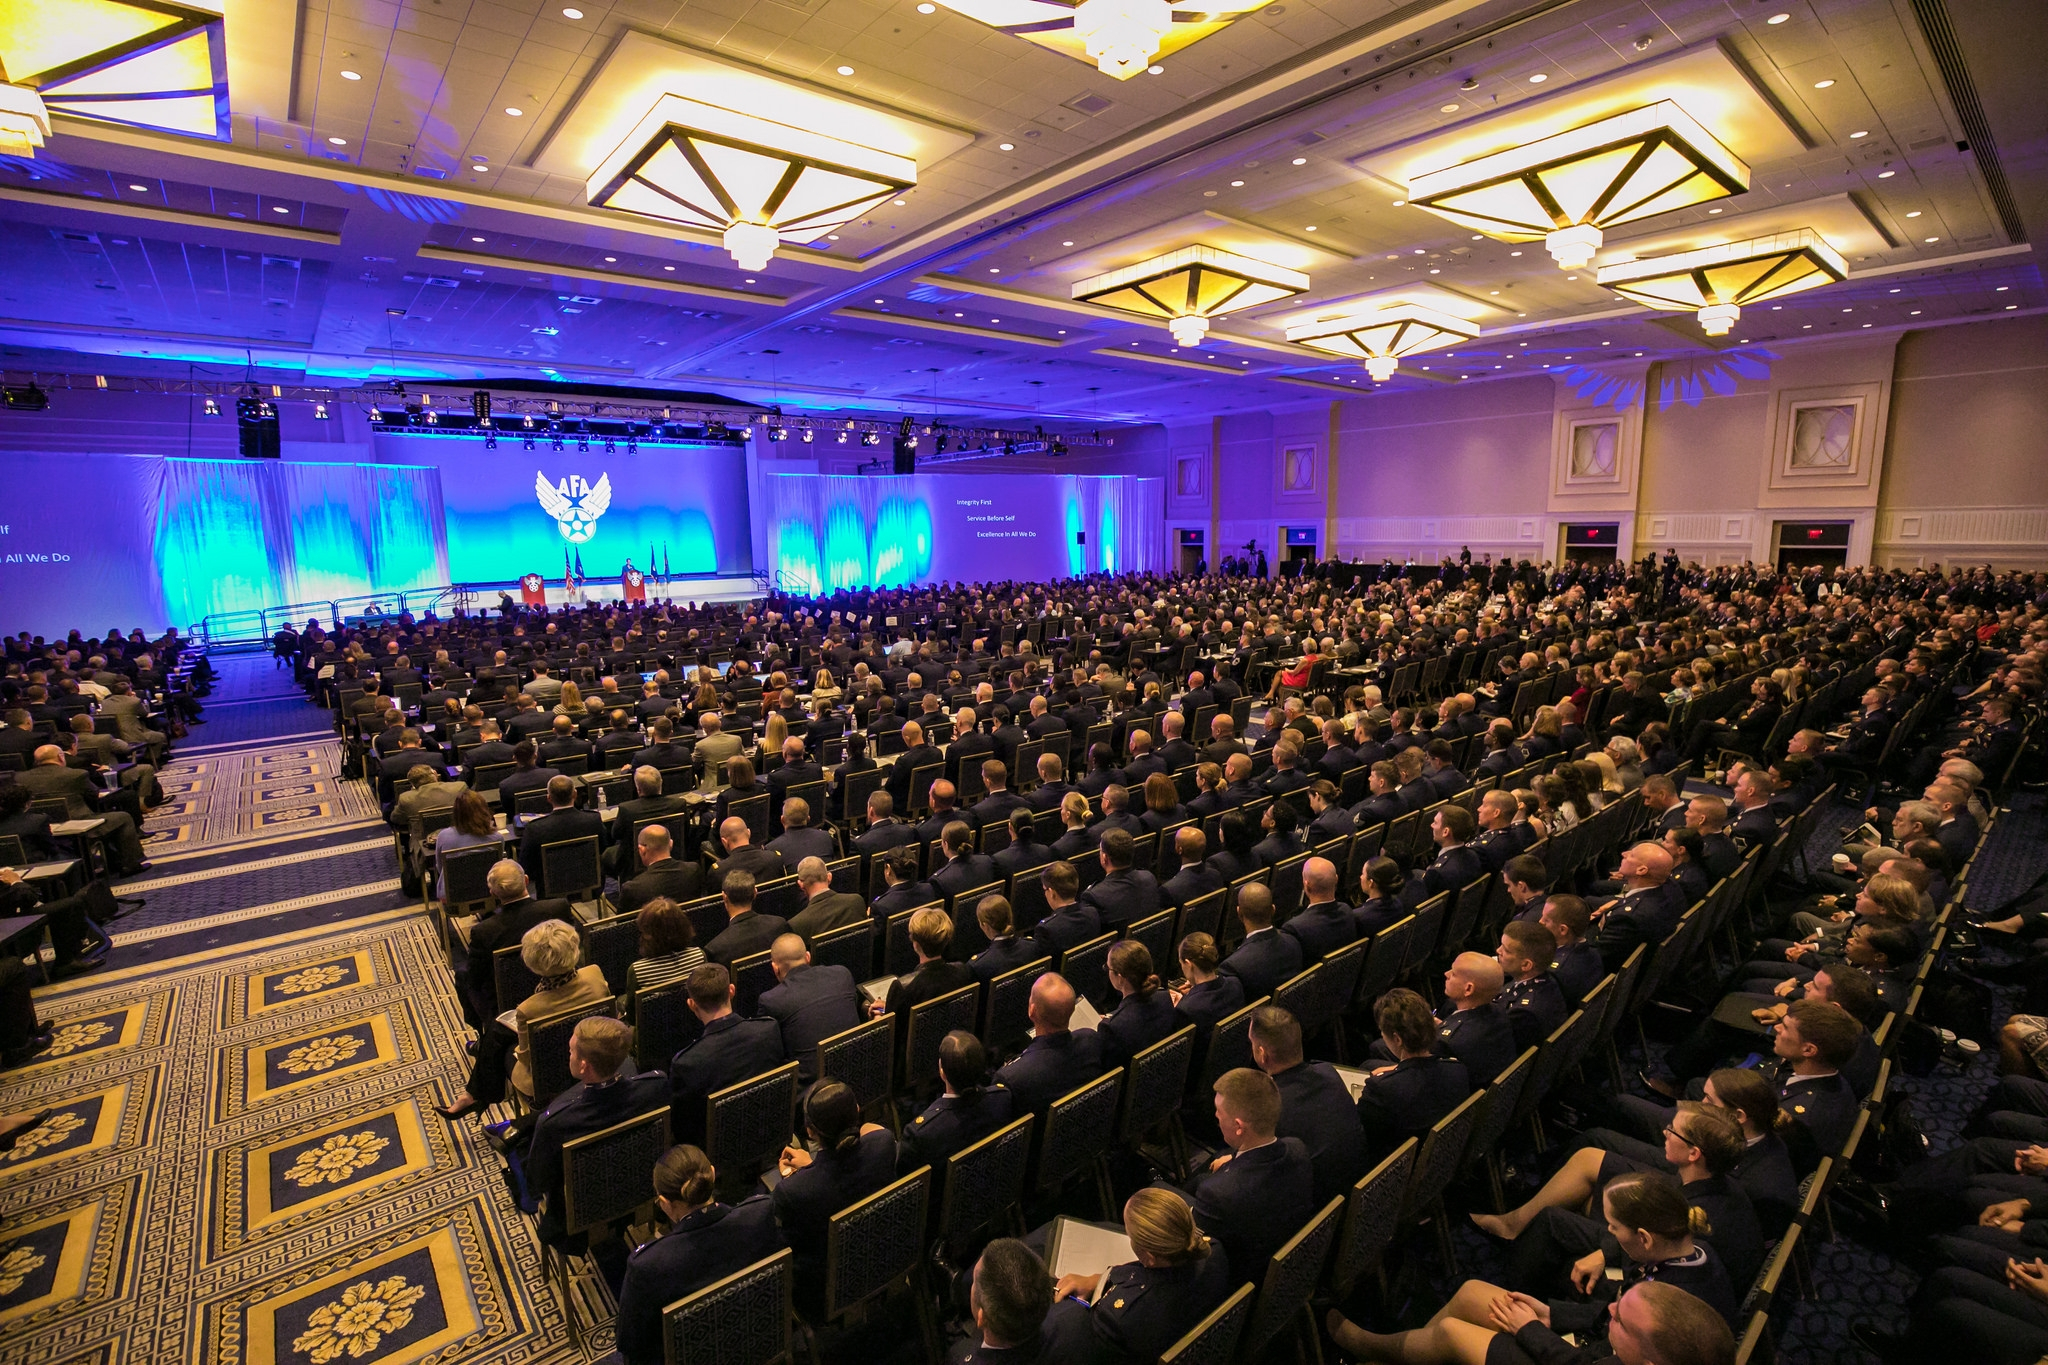 Events - Air Force Association intended for Orlando Convention Center Schedule September 2021